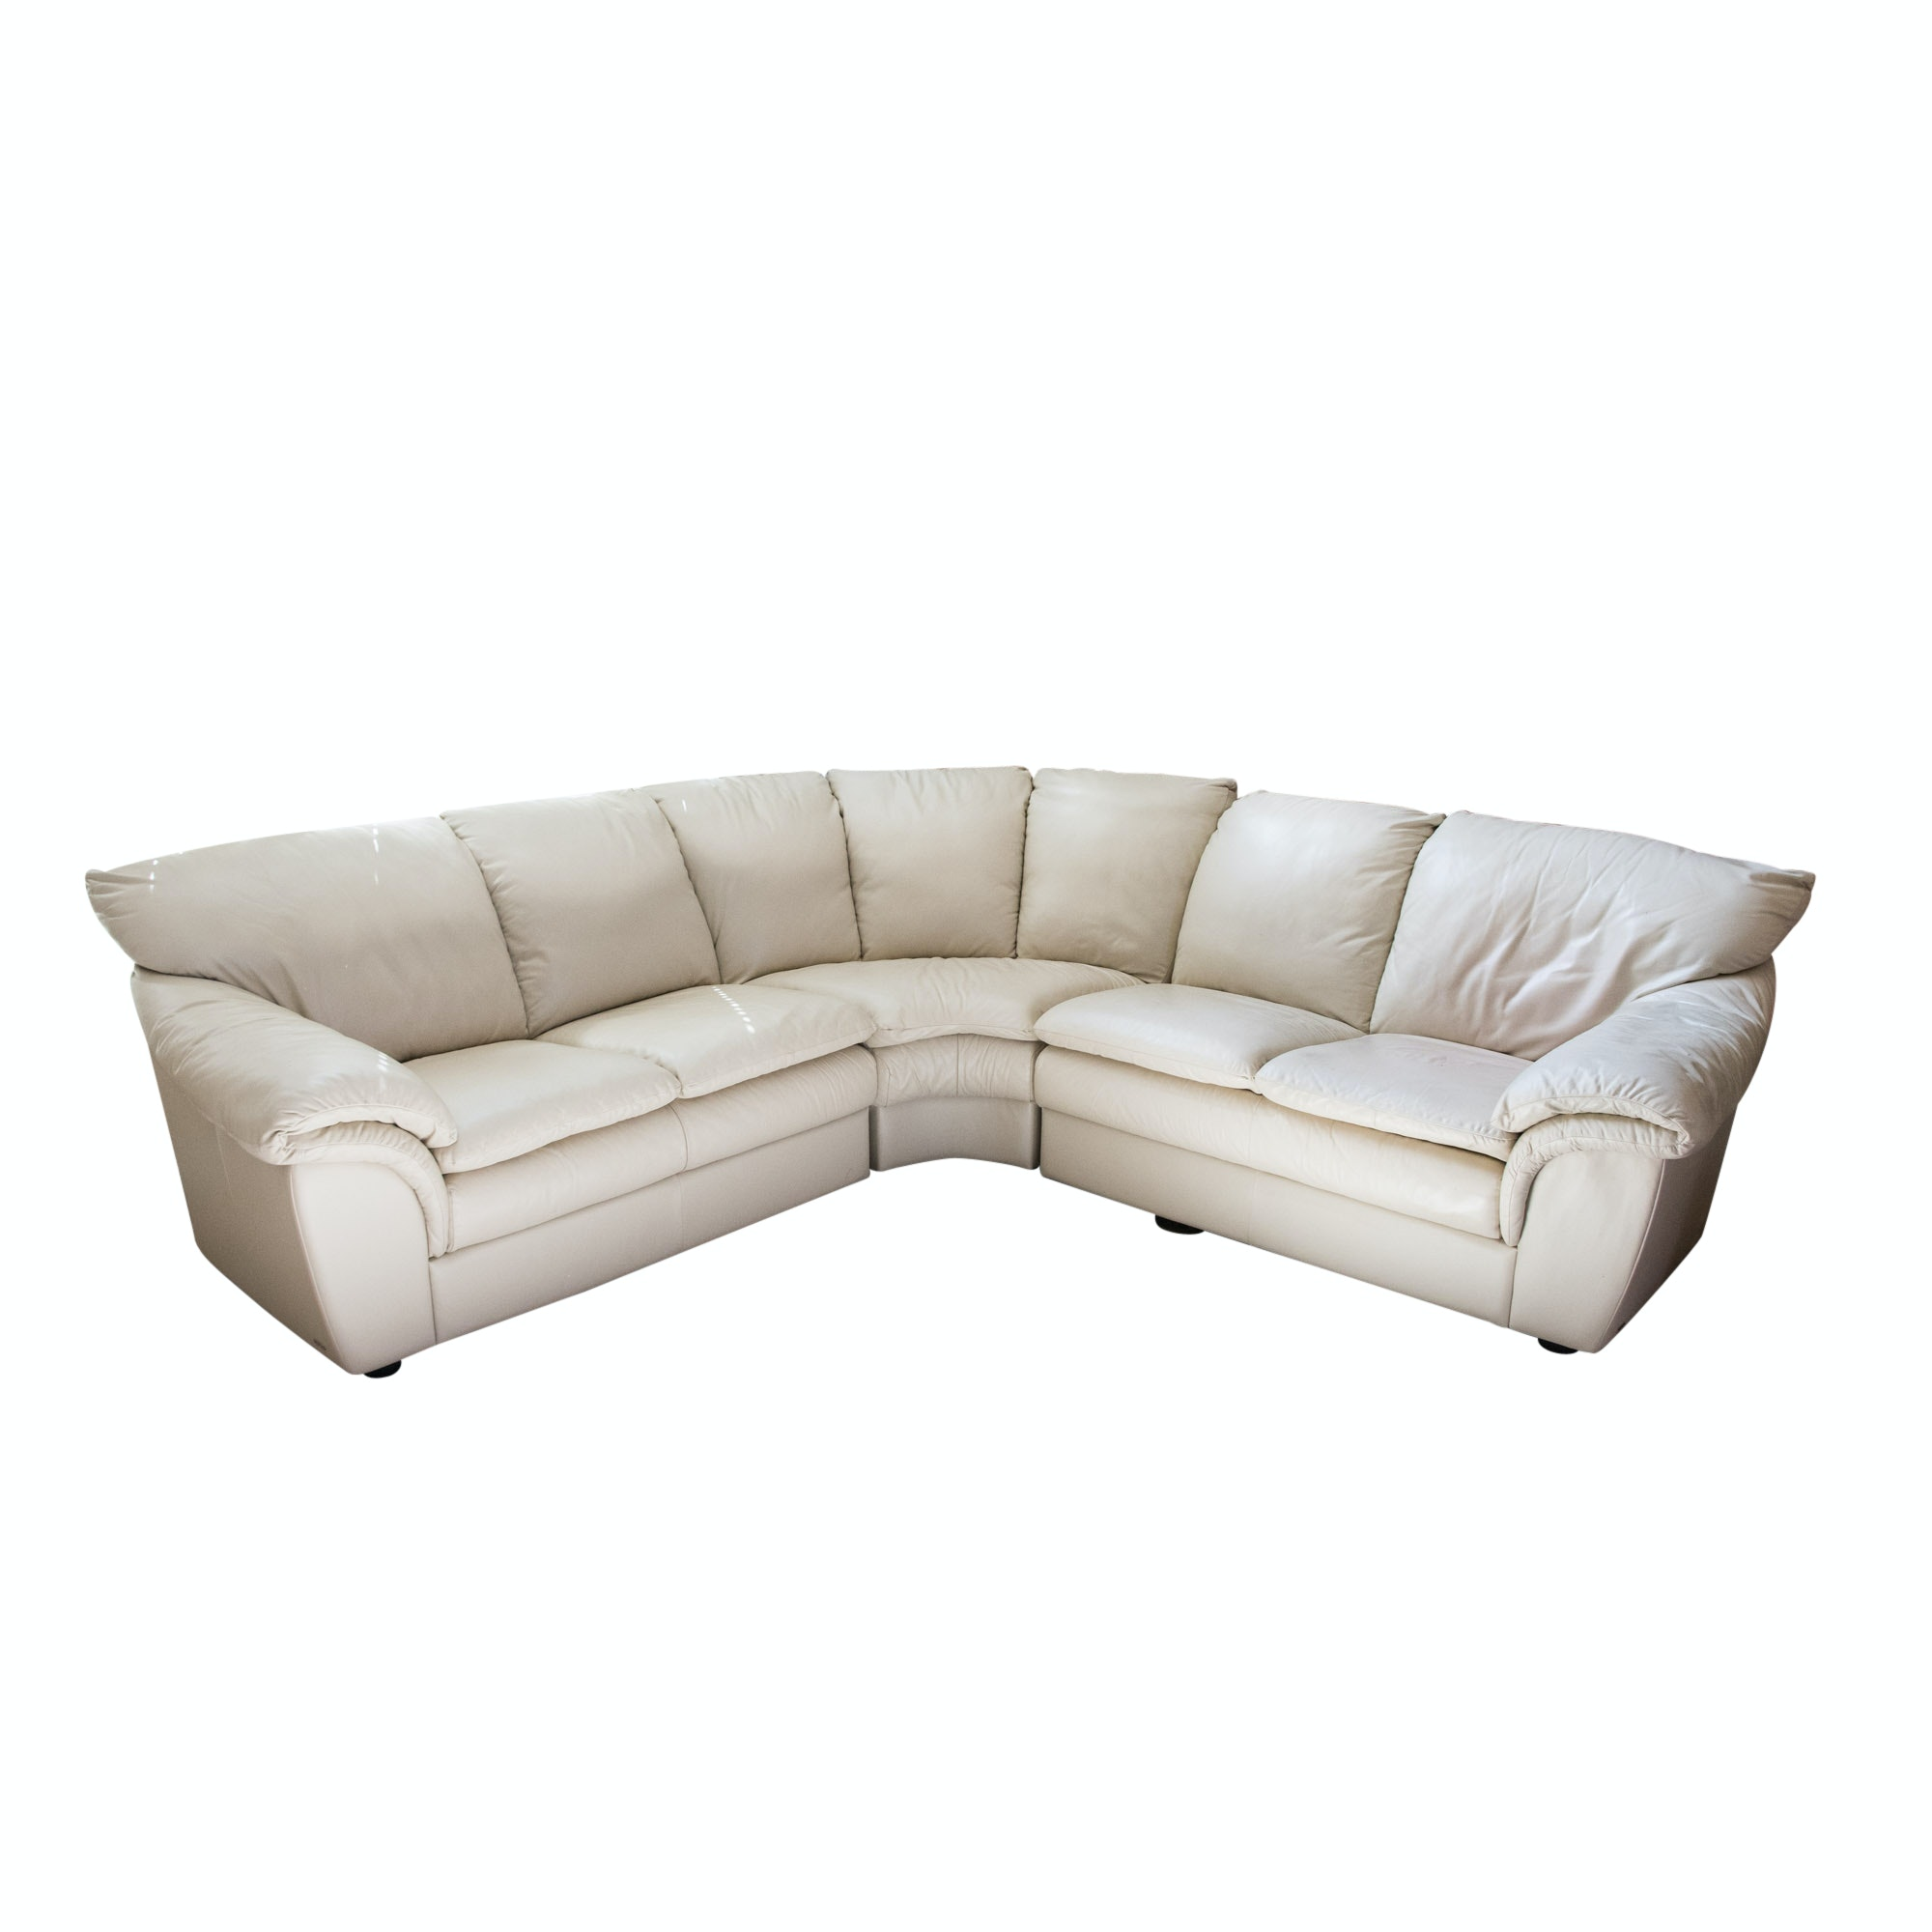 Contemporary Beige Leather Sectional Sofa by Natuzzi